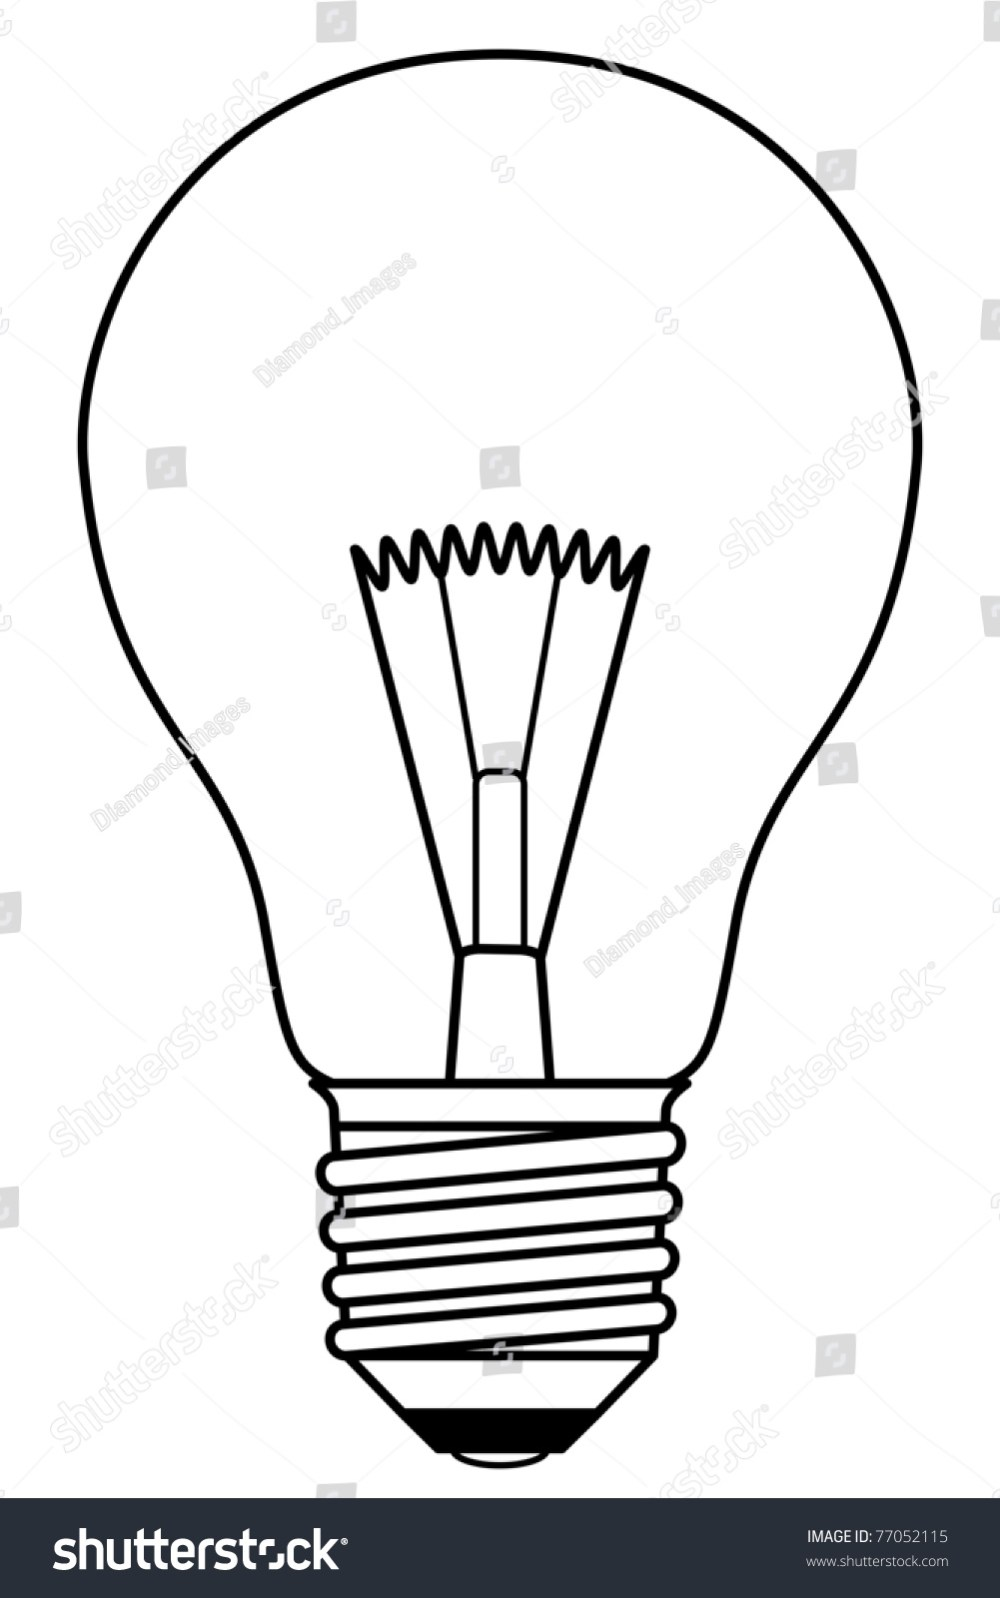 medium resolution of traditional inefficient incandescent light bulb in a black and white design